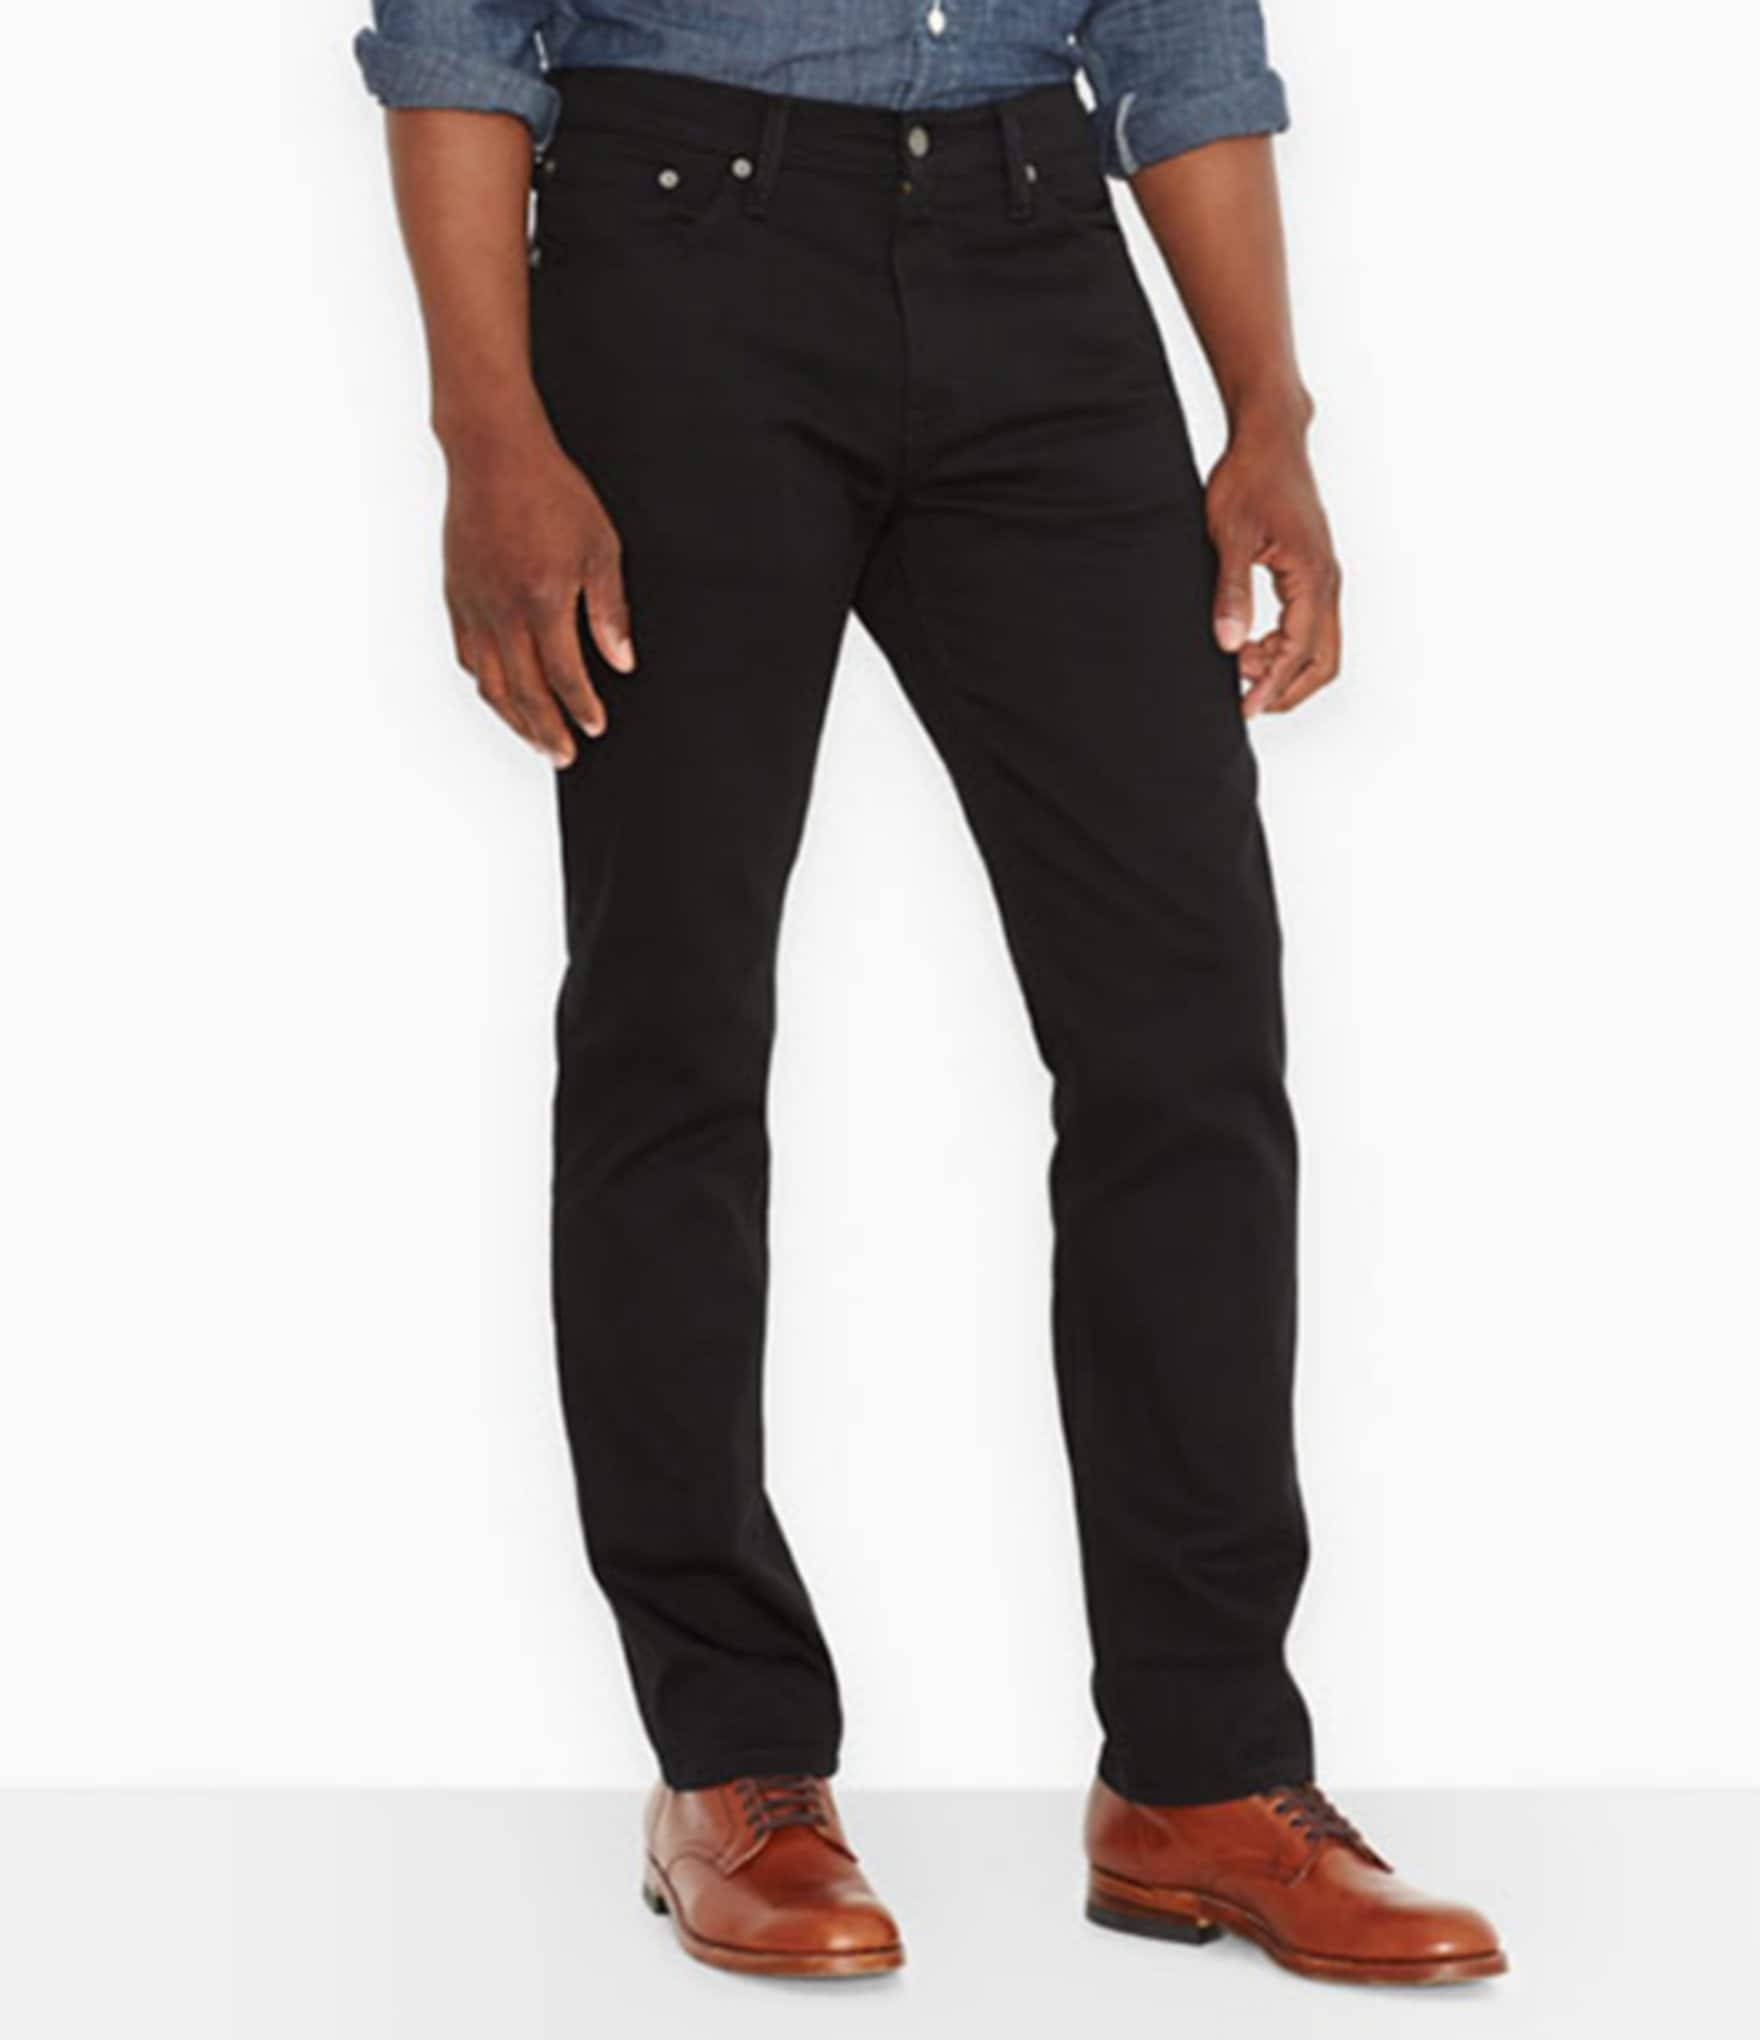 Levis Jeans For Men With Big Thighs